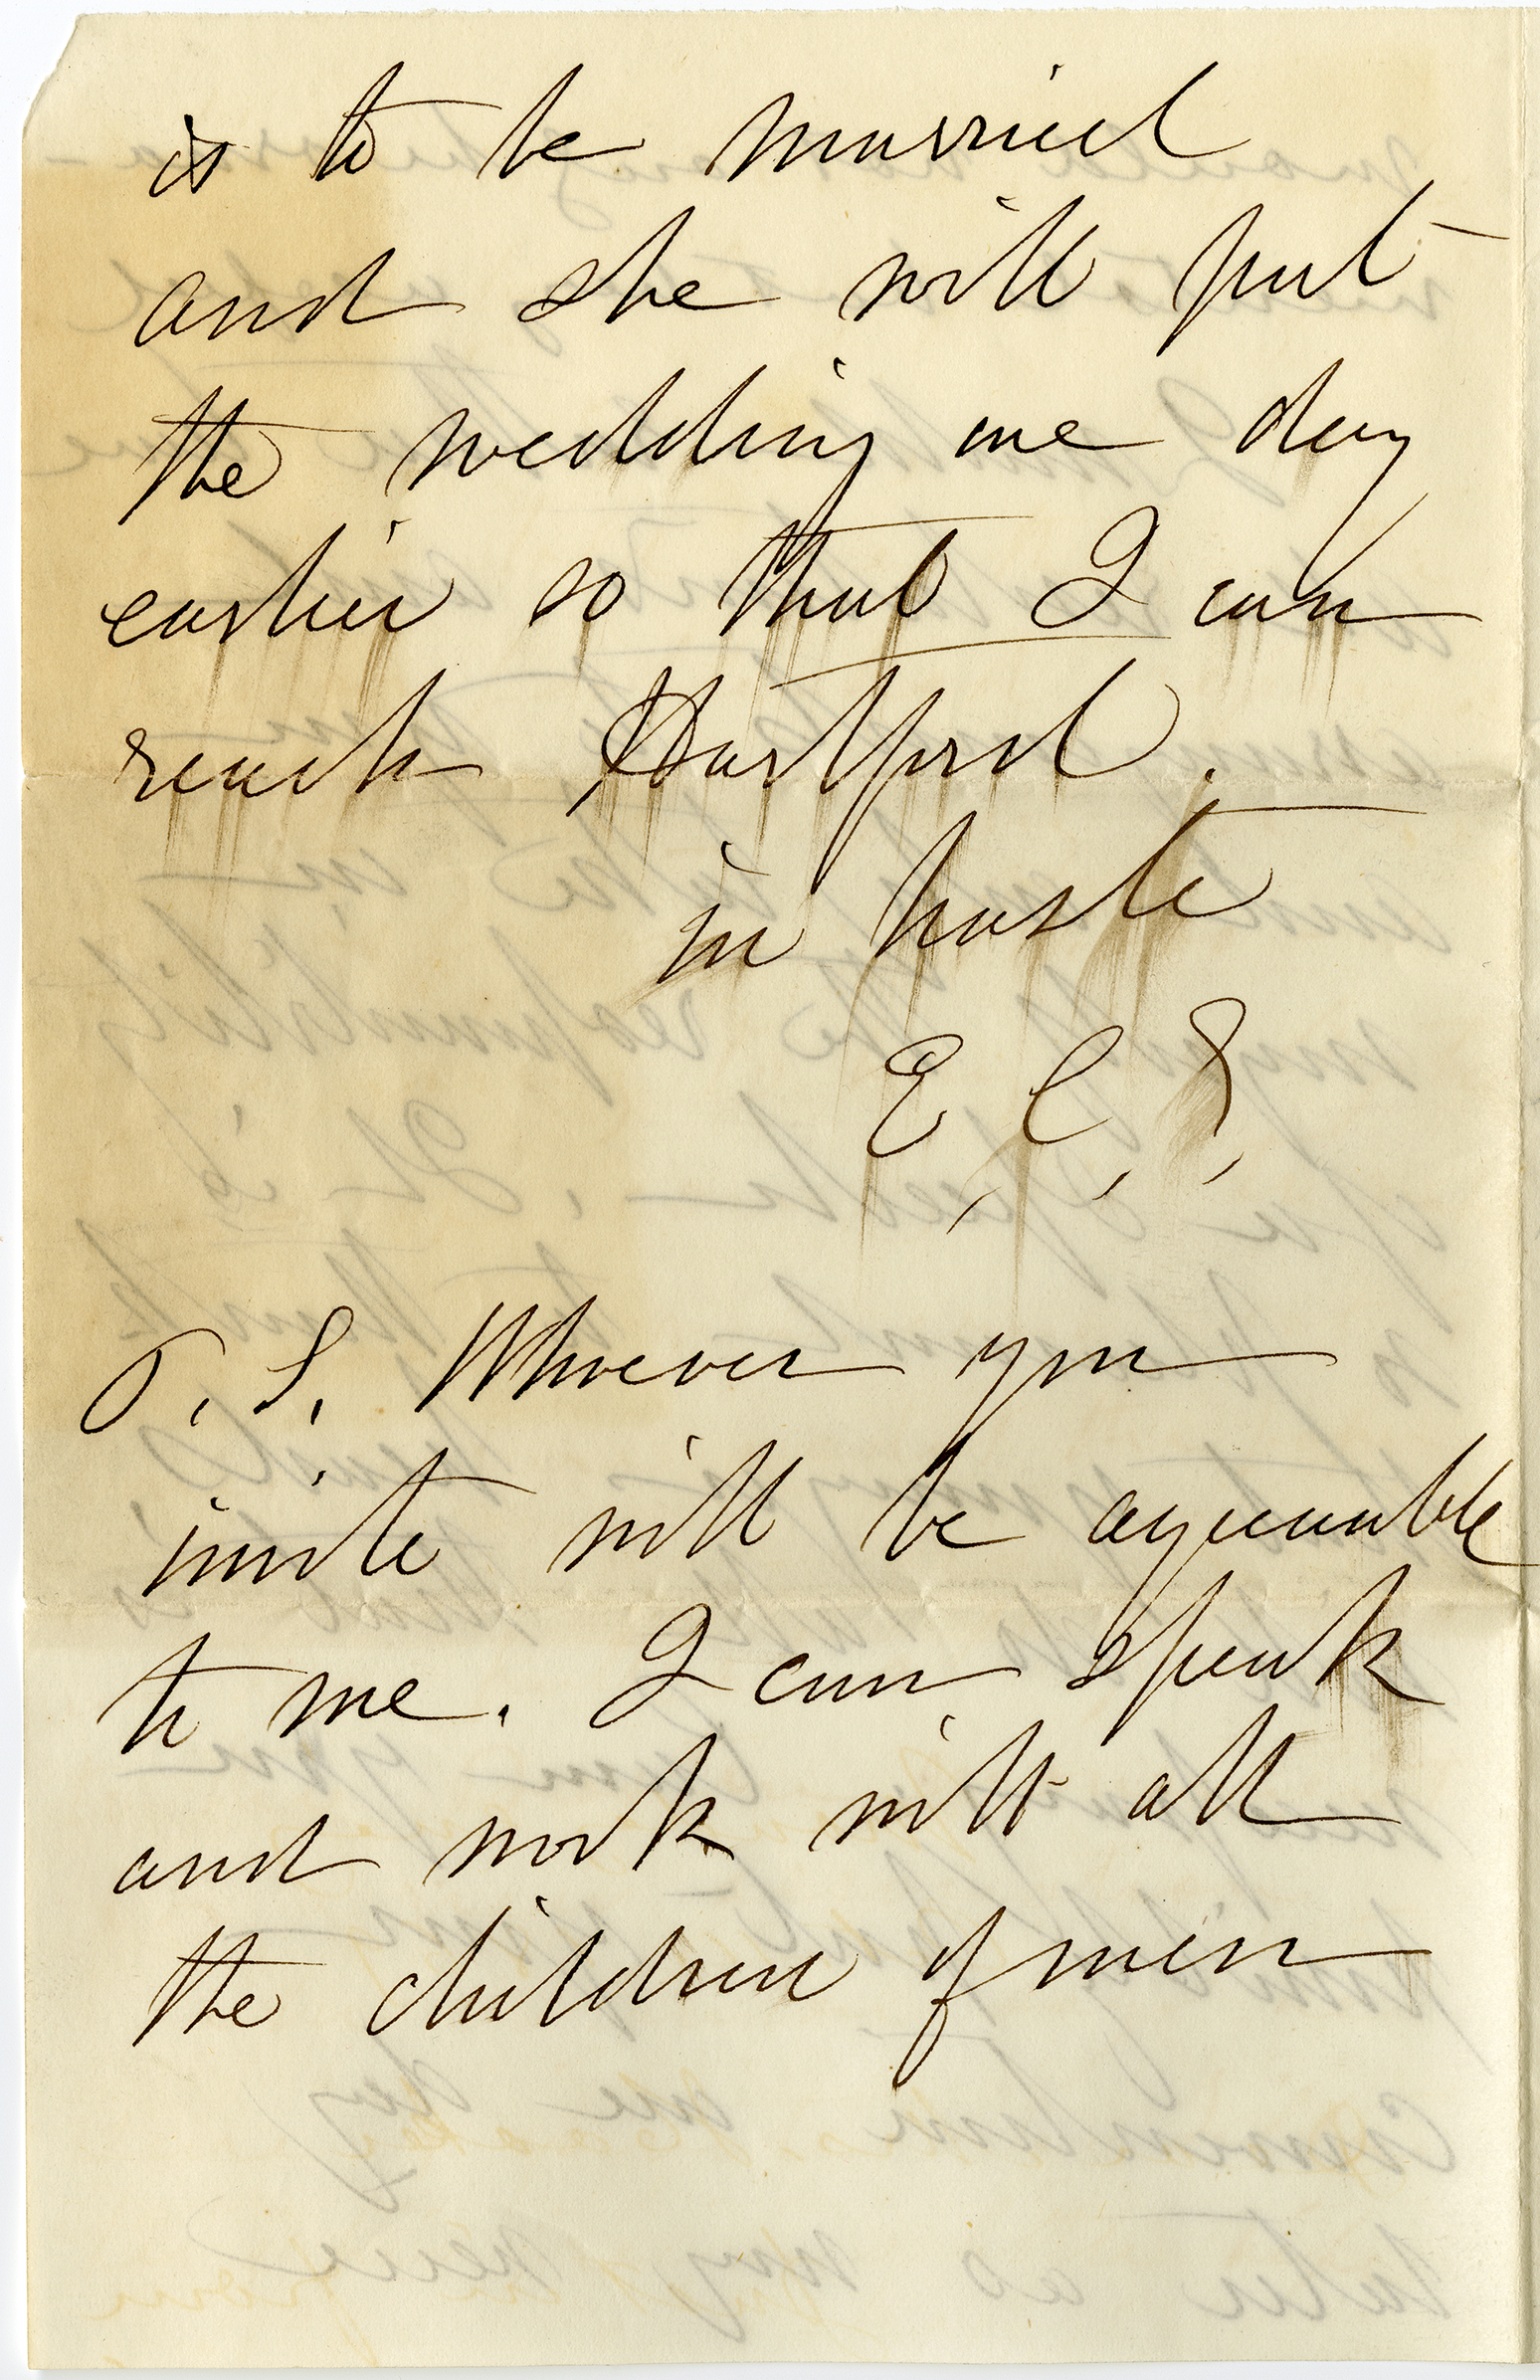 The 4th page of a letter from Susan B. Anthony to Isabella Beecher Hooker